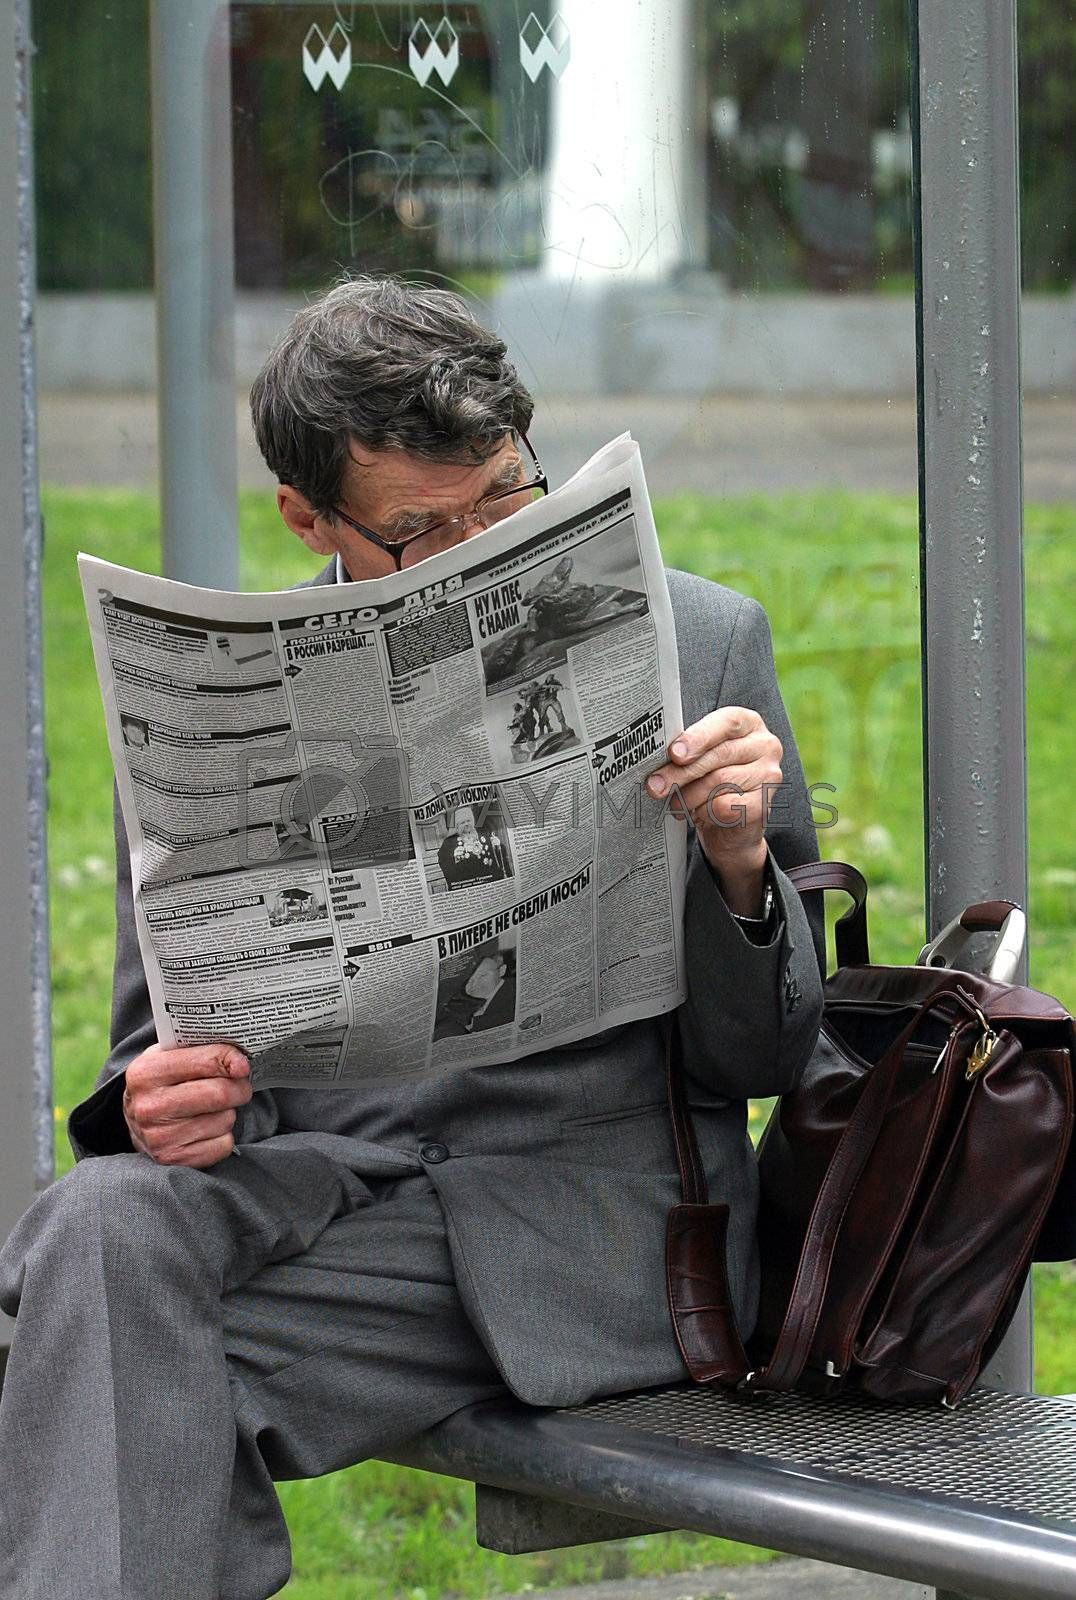 The man reads the newspaper at a bus stop